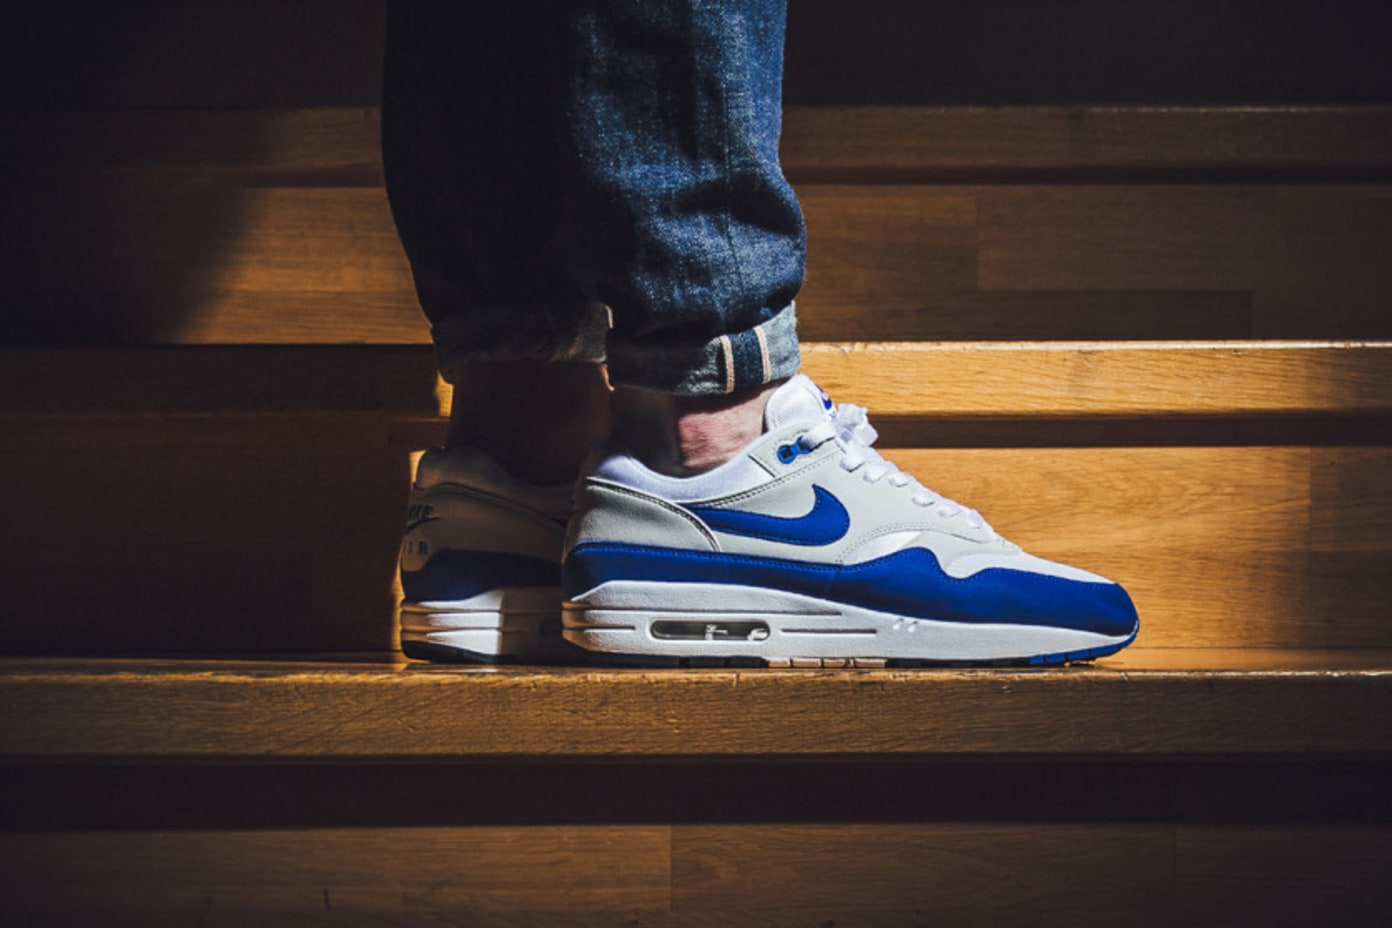 estudiante universitario Imaginativo a la deriva  Nike Air Max 1 OG Anniversary Royal Blue | RESTOCK | Shelflife